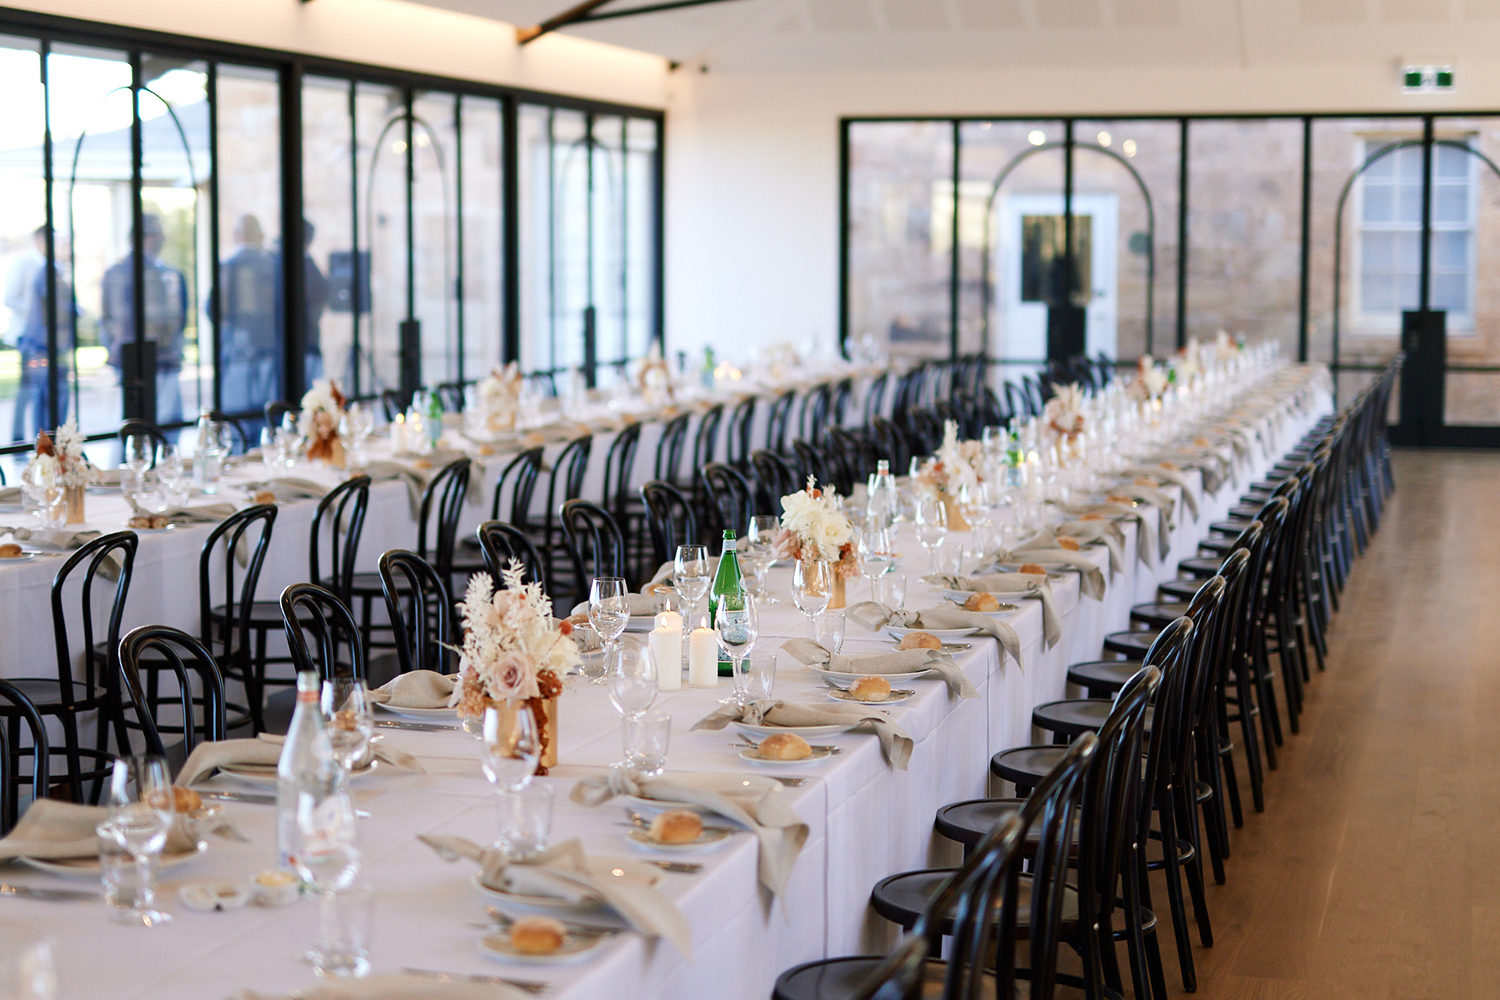 Spaces to suit any occasion.